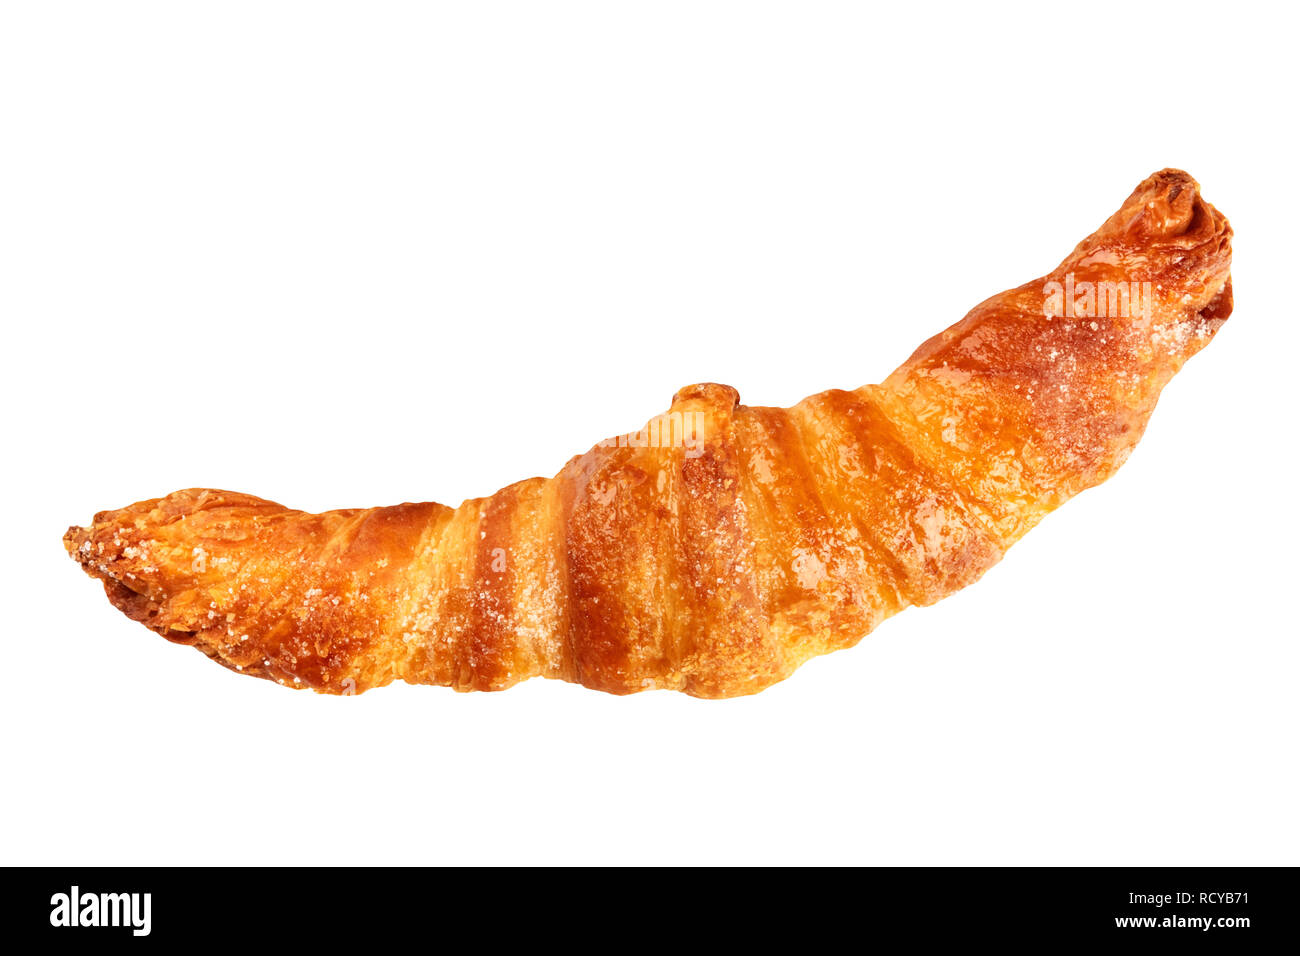 A croissant, shot from the top, isolated on a white background with a clipping path - Stock Image